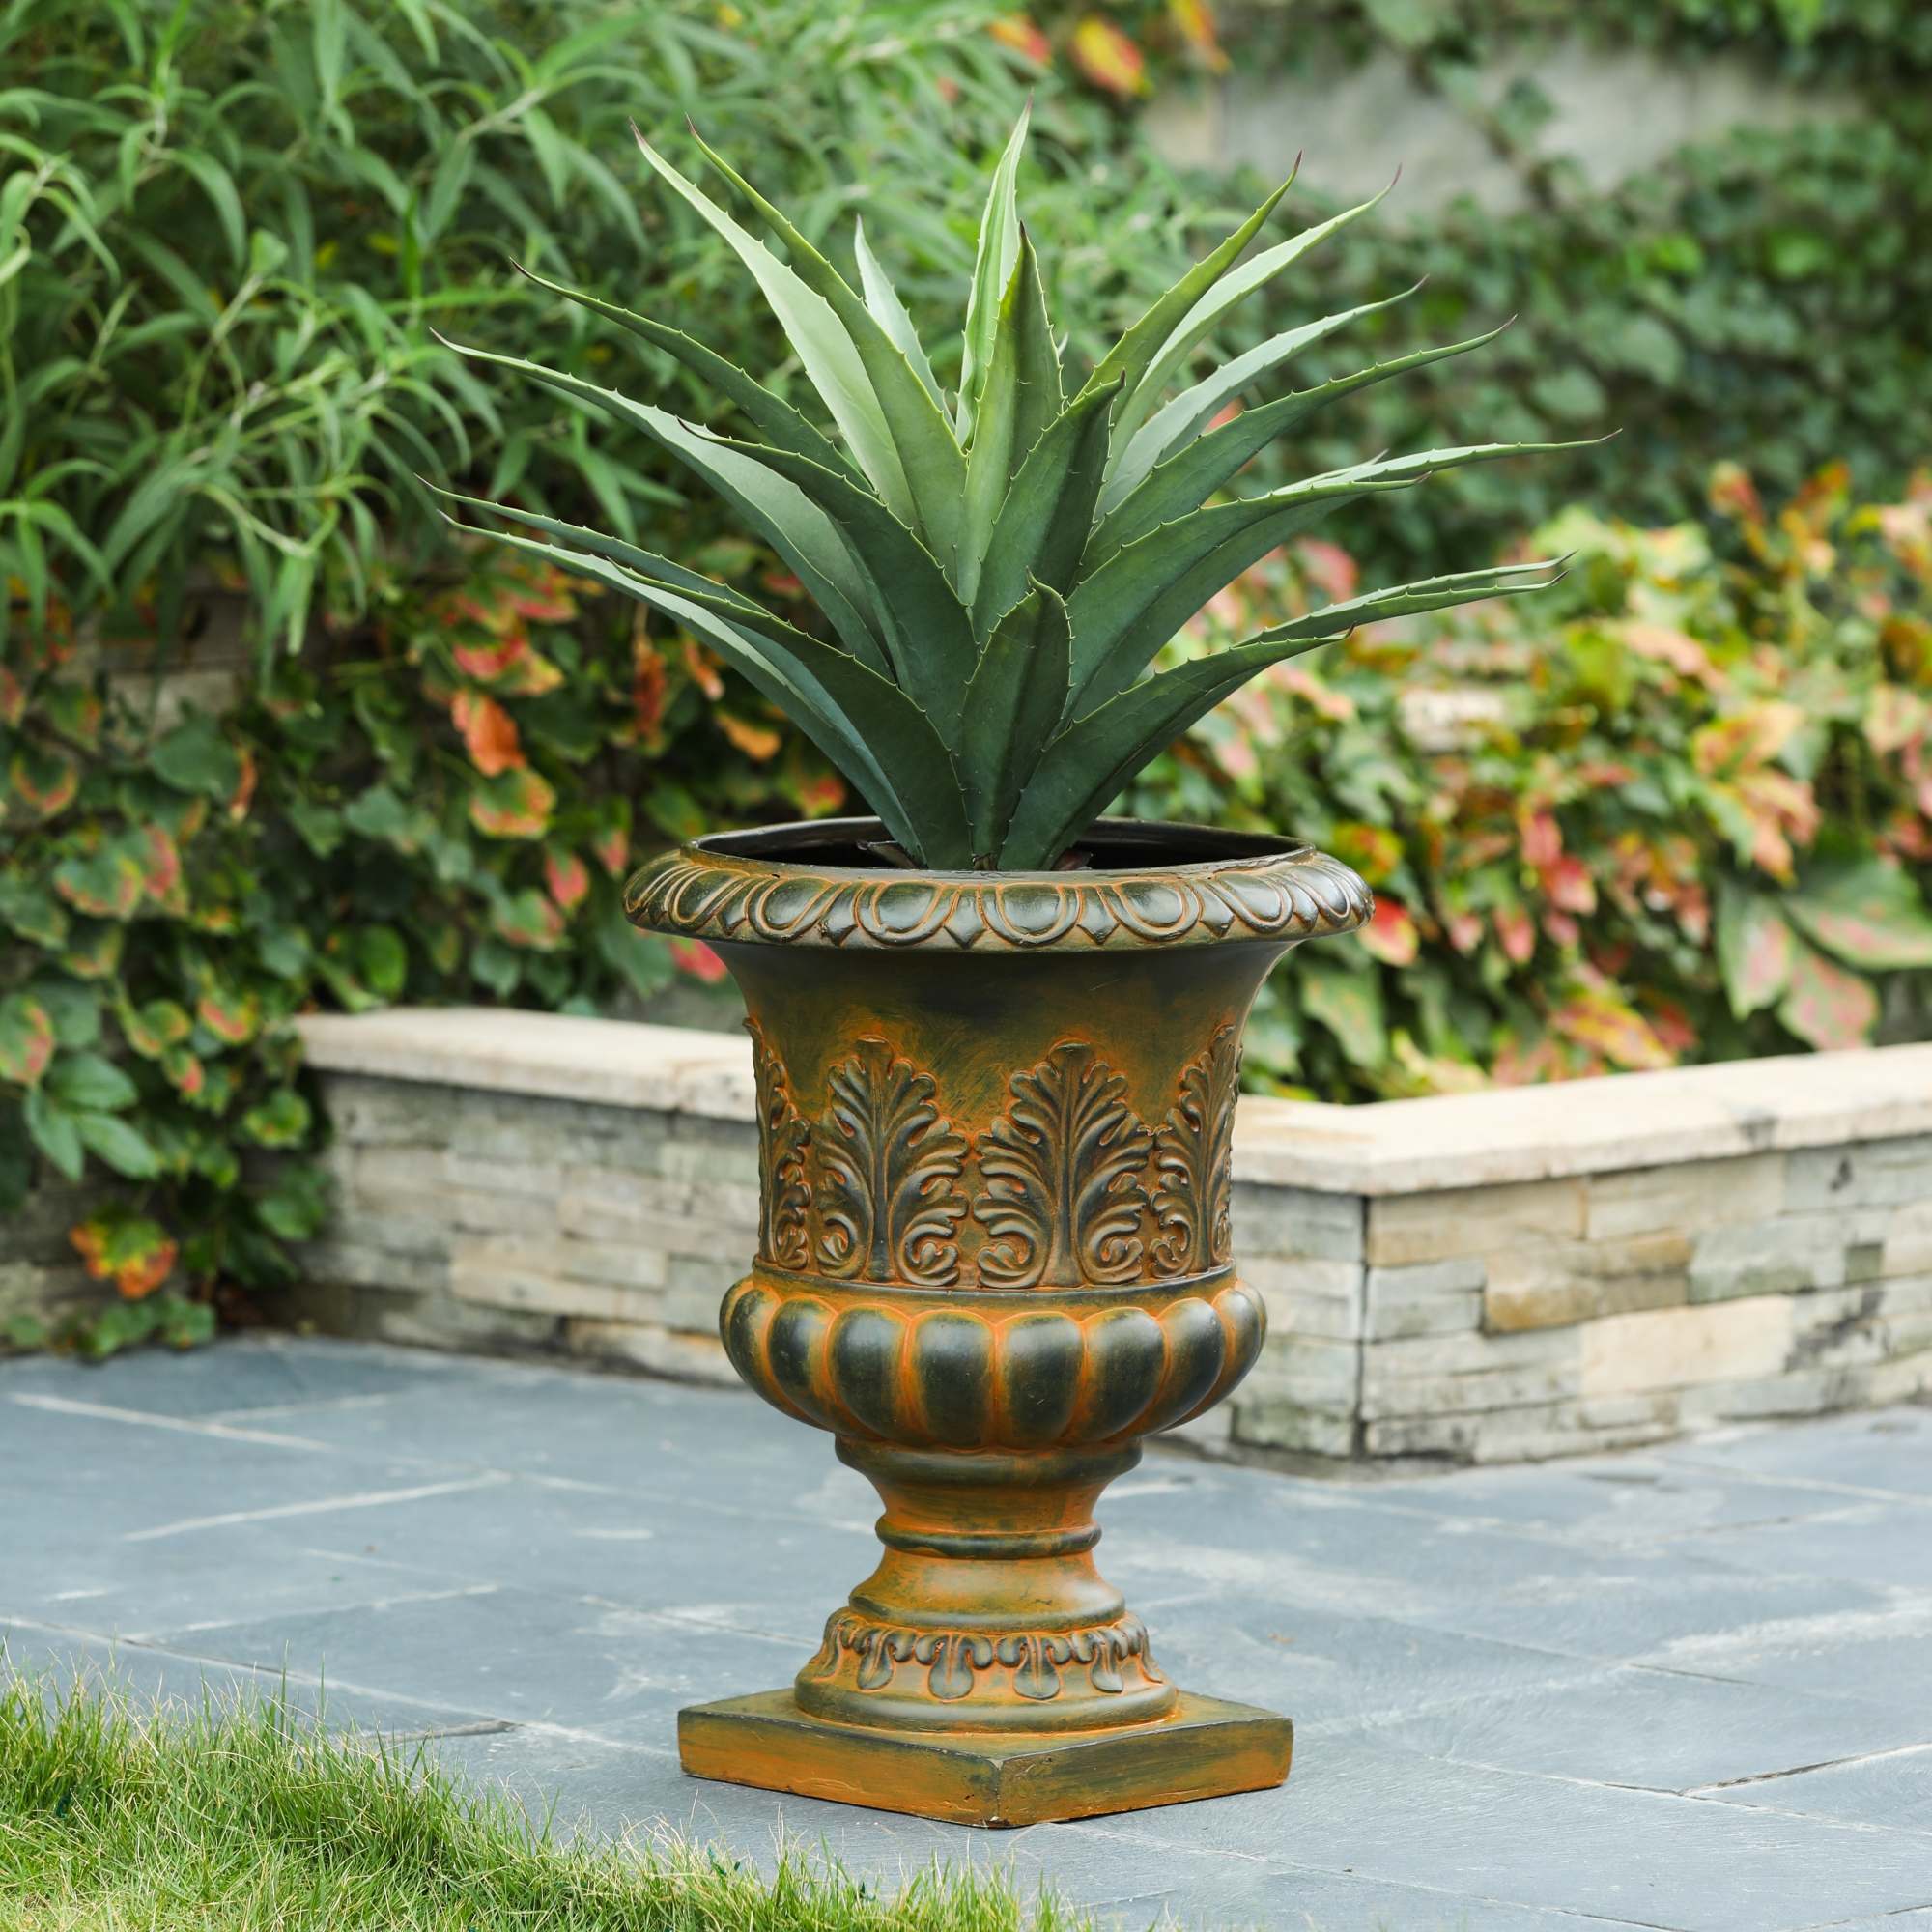 Winsome House WH040 Classic Rustic Urn Planter, Bronze